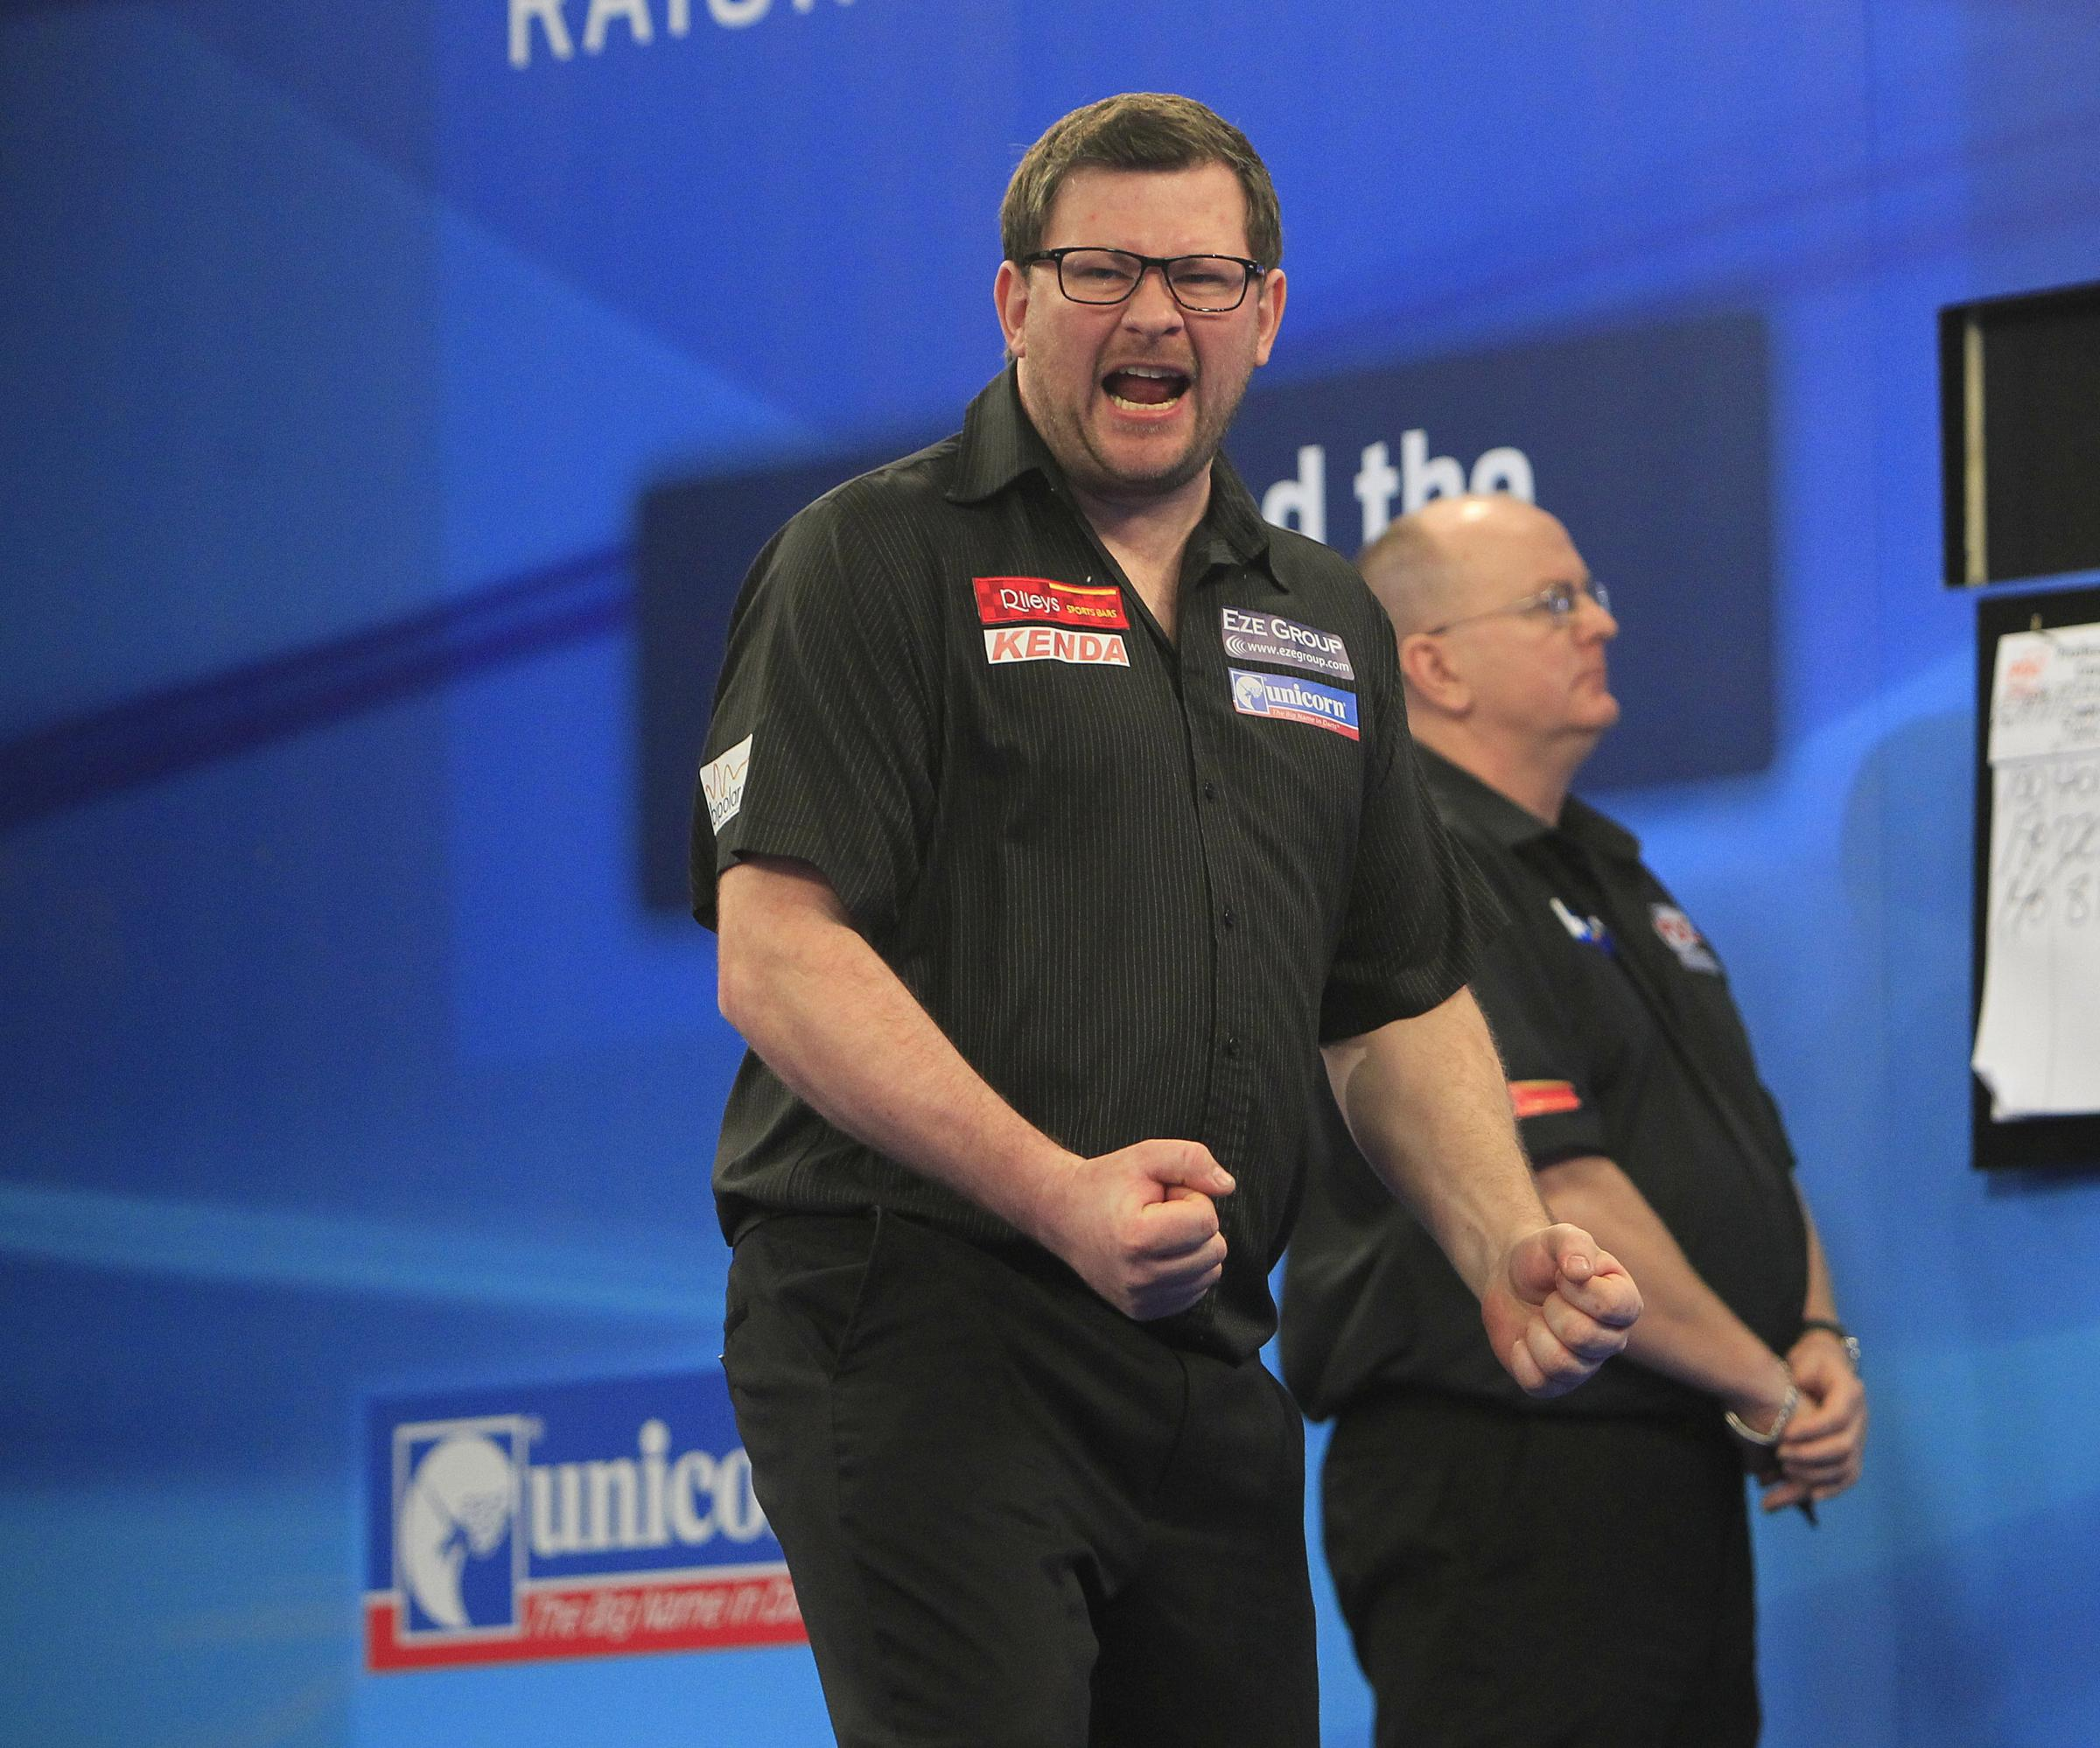 Darts stars looking forward to second Millwall Masters